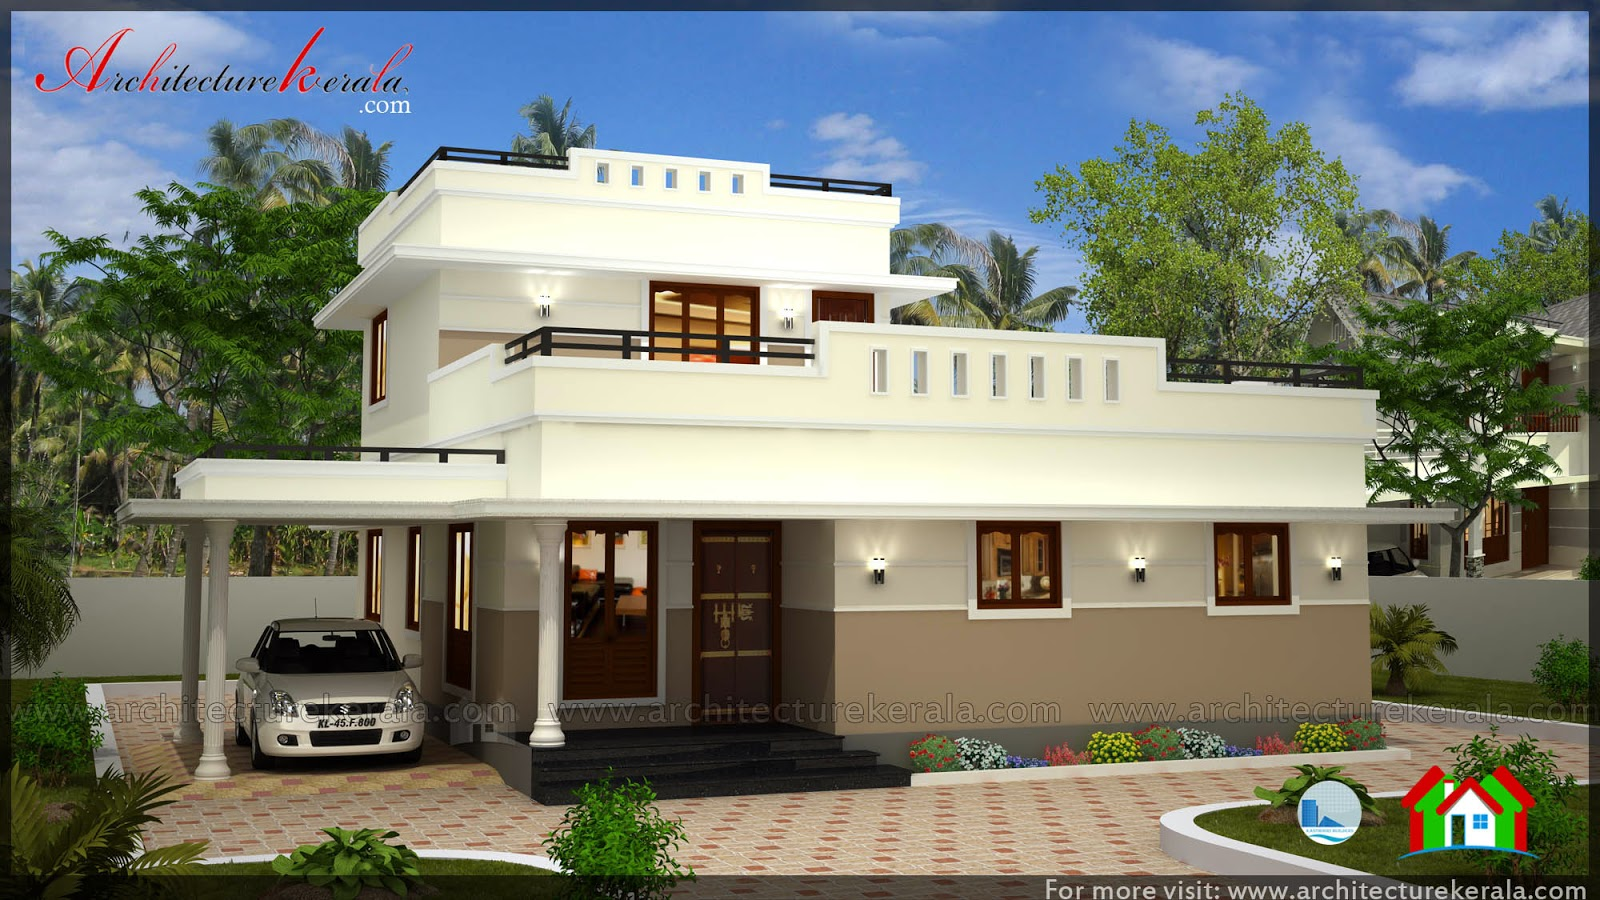 Low cost 3 bedroom kerala house plan with elevation free for House designs kerala style low cost